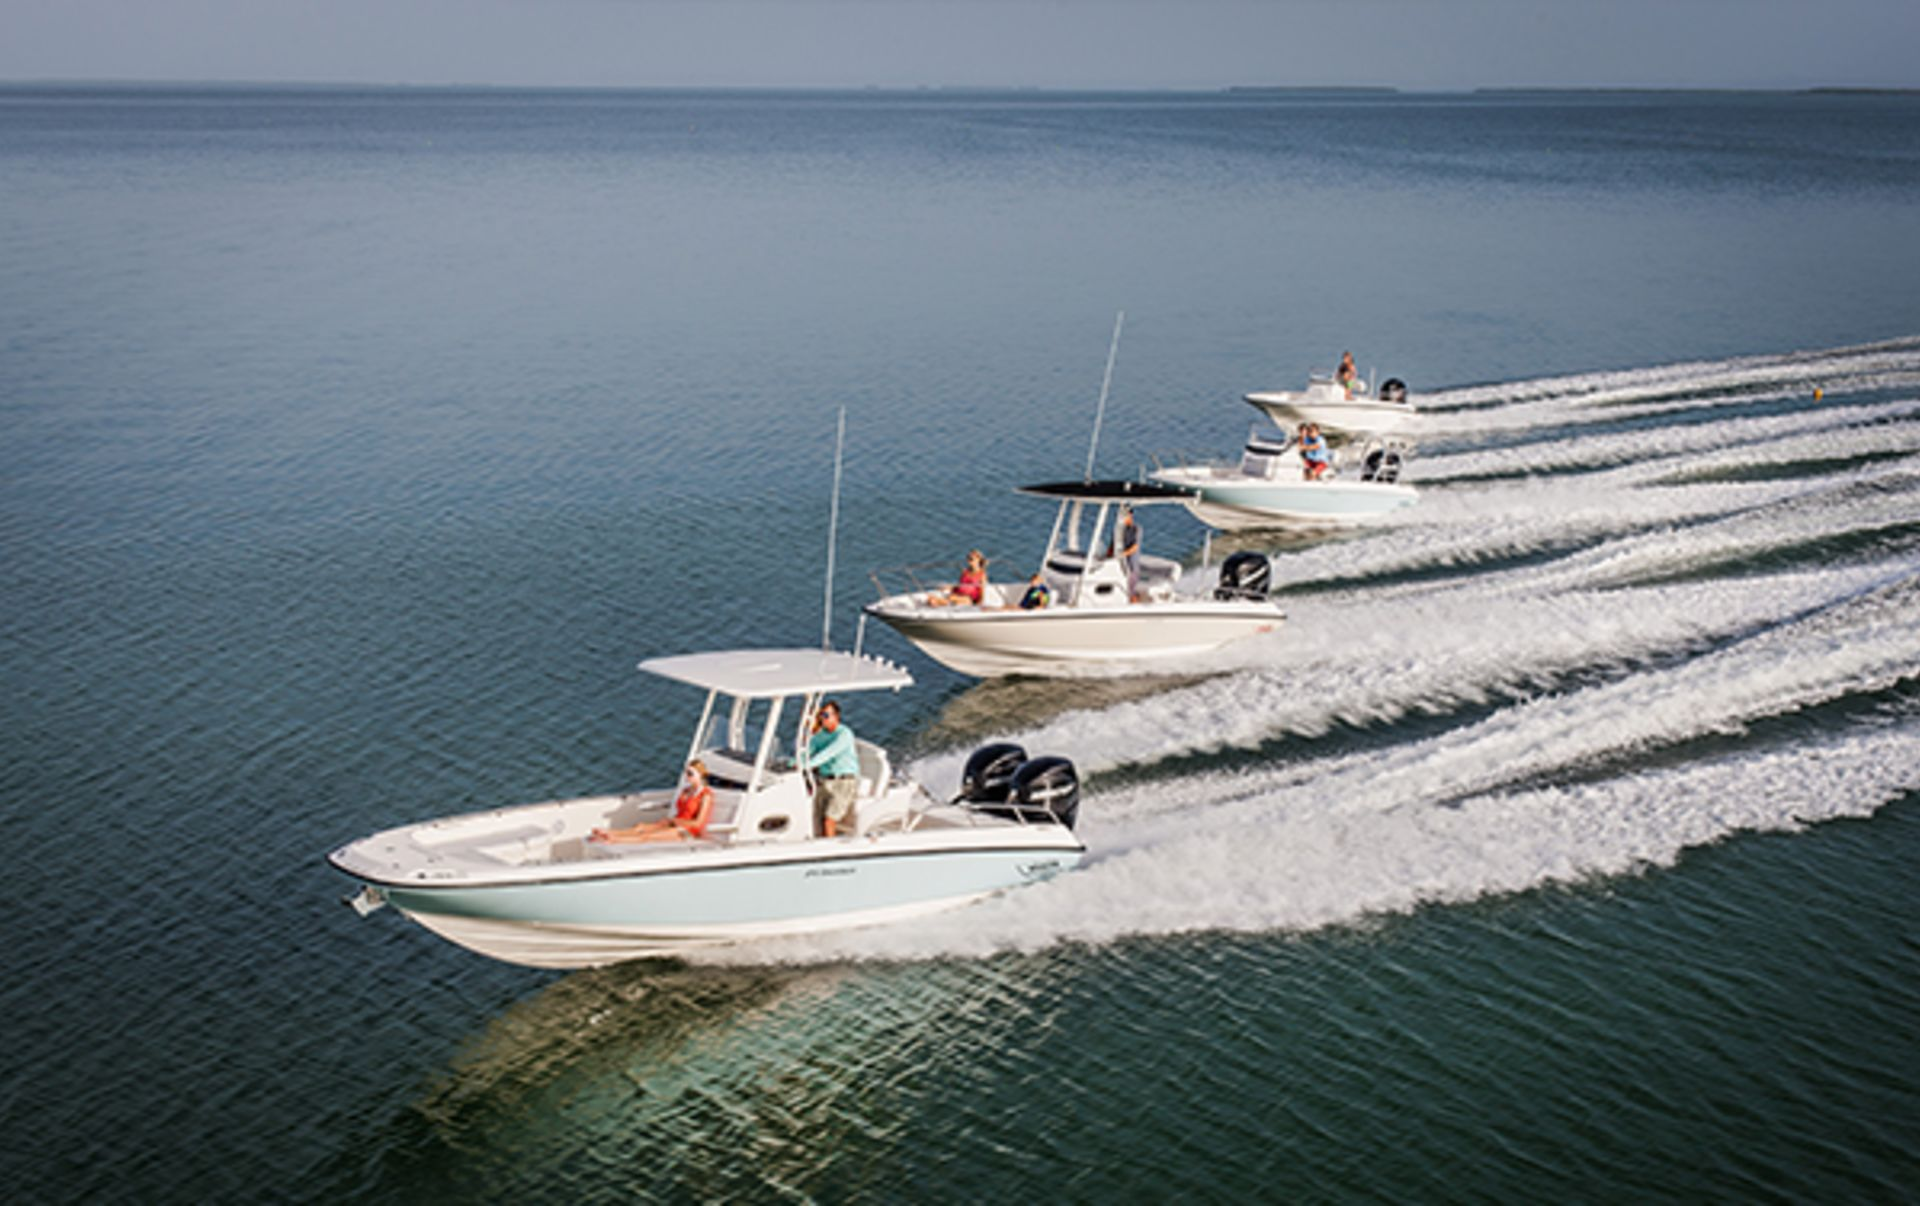 Boston Whaler eyes 350-job expansion in Edgewater